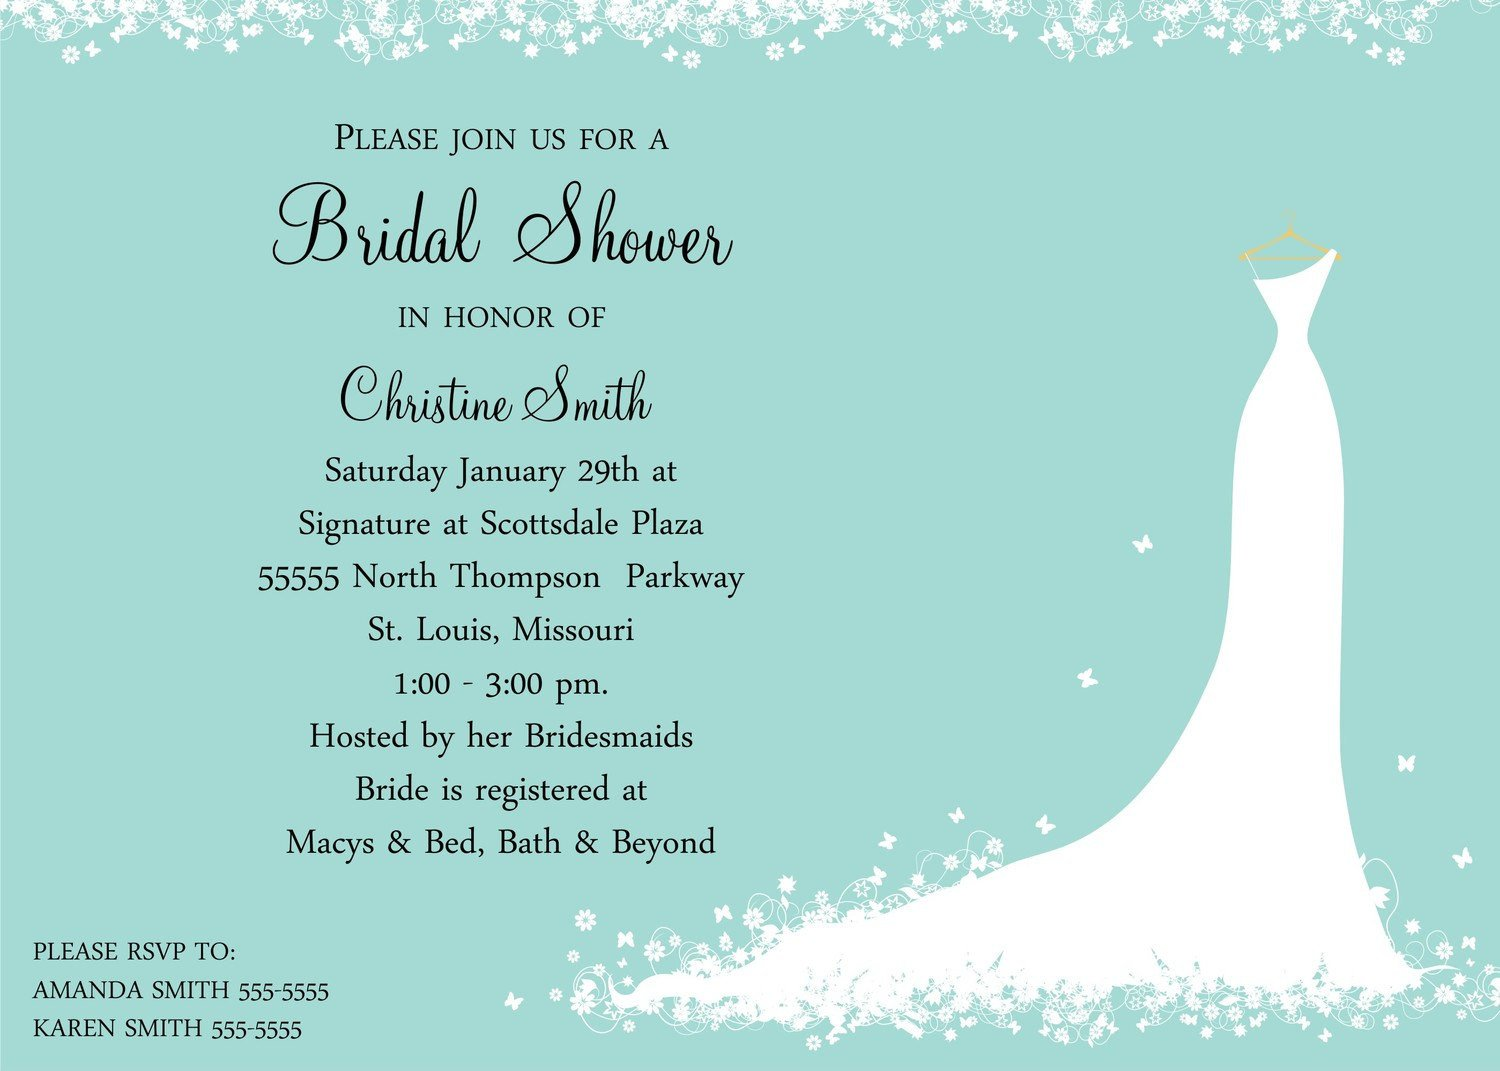 Wedding Shower Invitation Templates Bridal Shower Invitation Bride